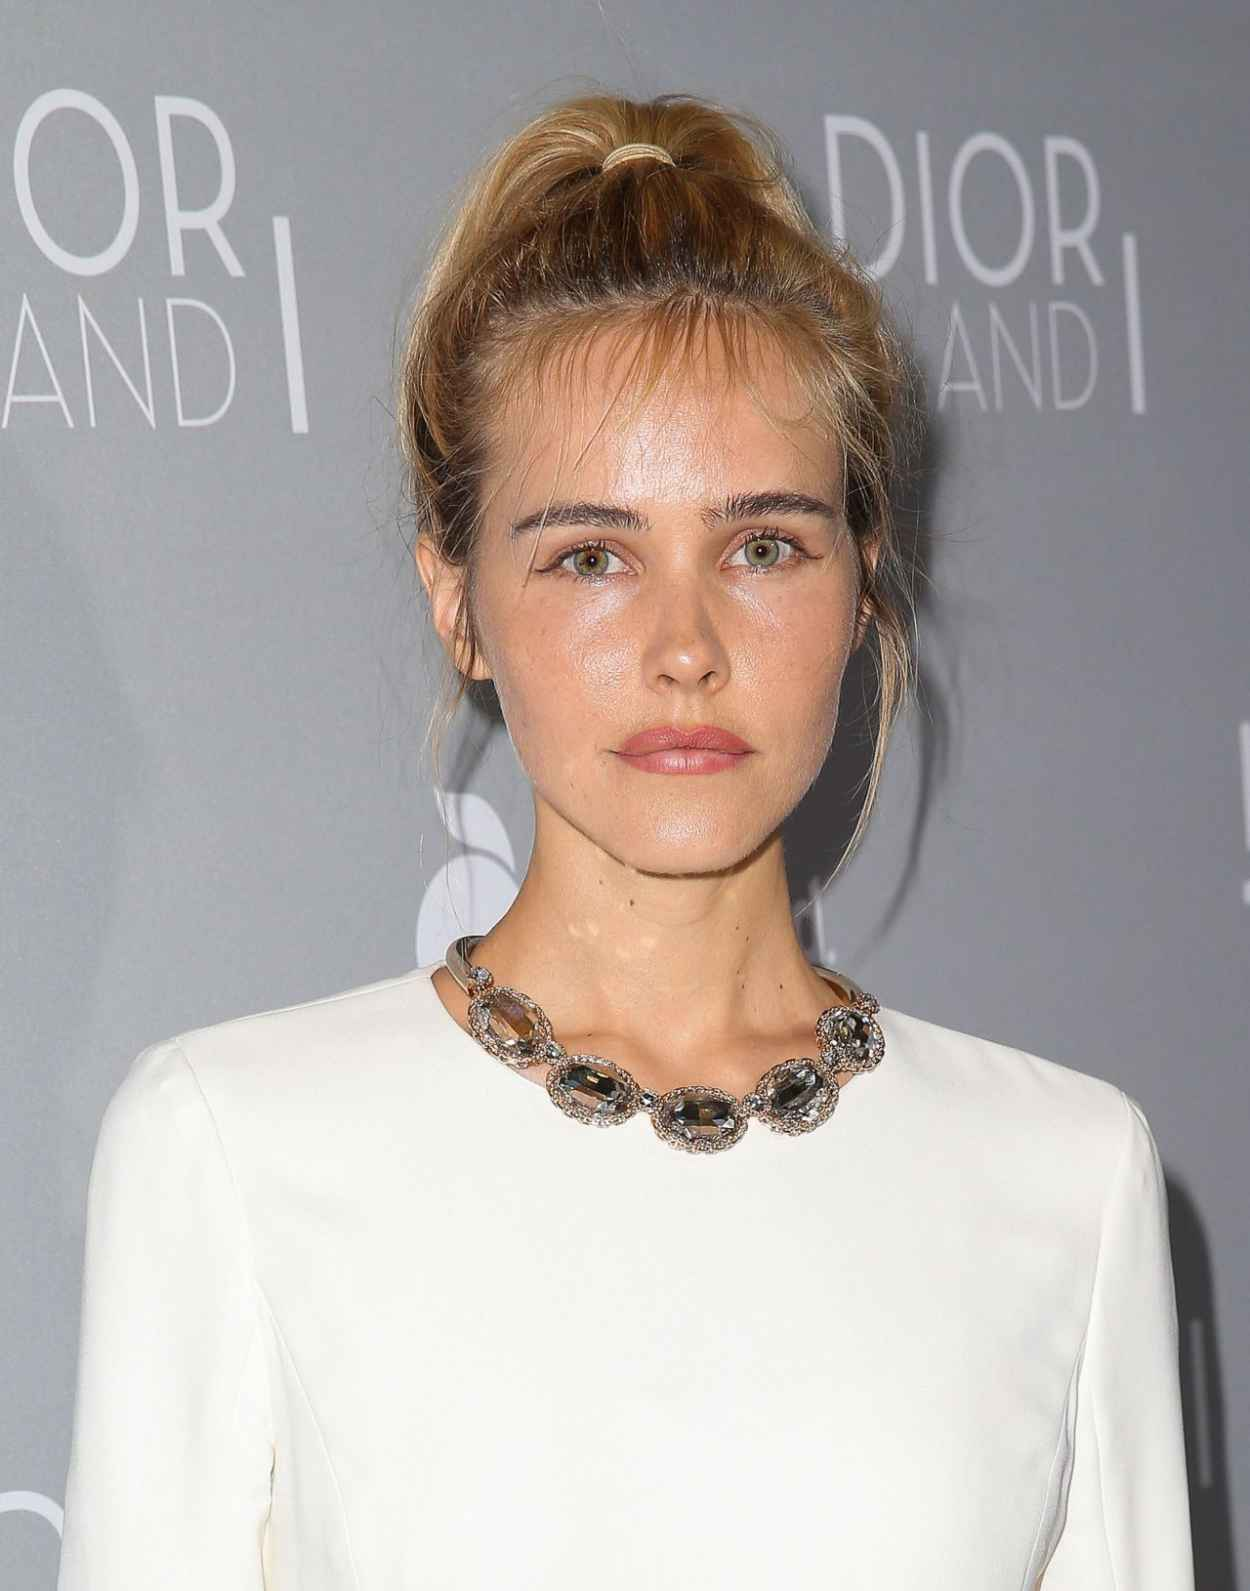 Isabel Lucas - Orchard Premiere of Dior and I in Los Angeles-3